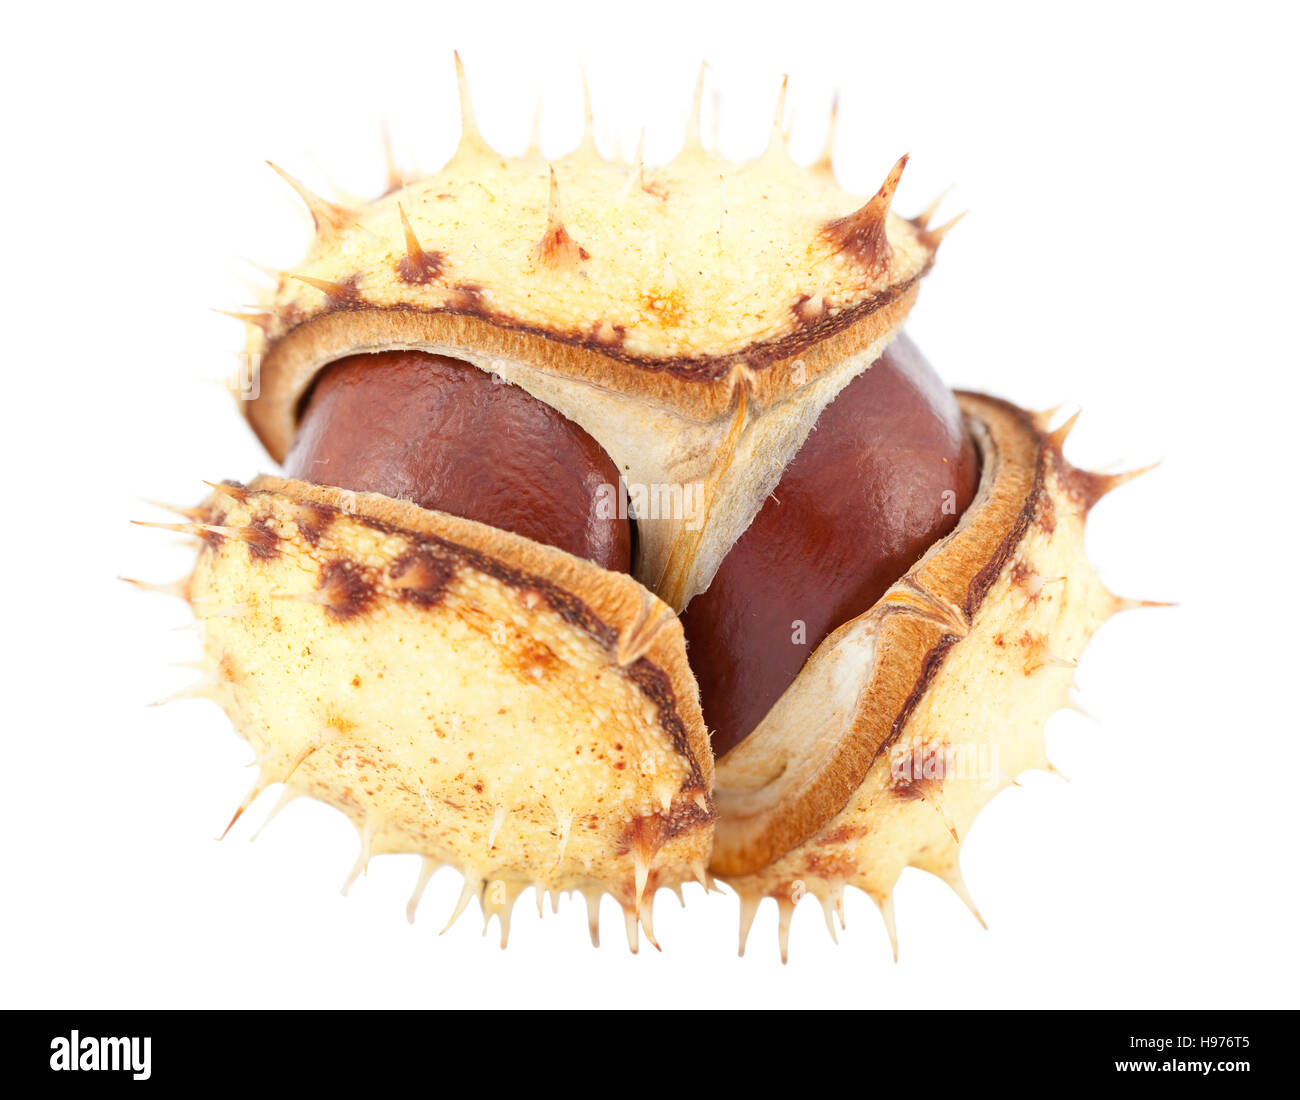 open chestnut in peel on white background - Stock Image